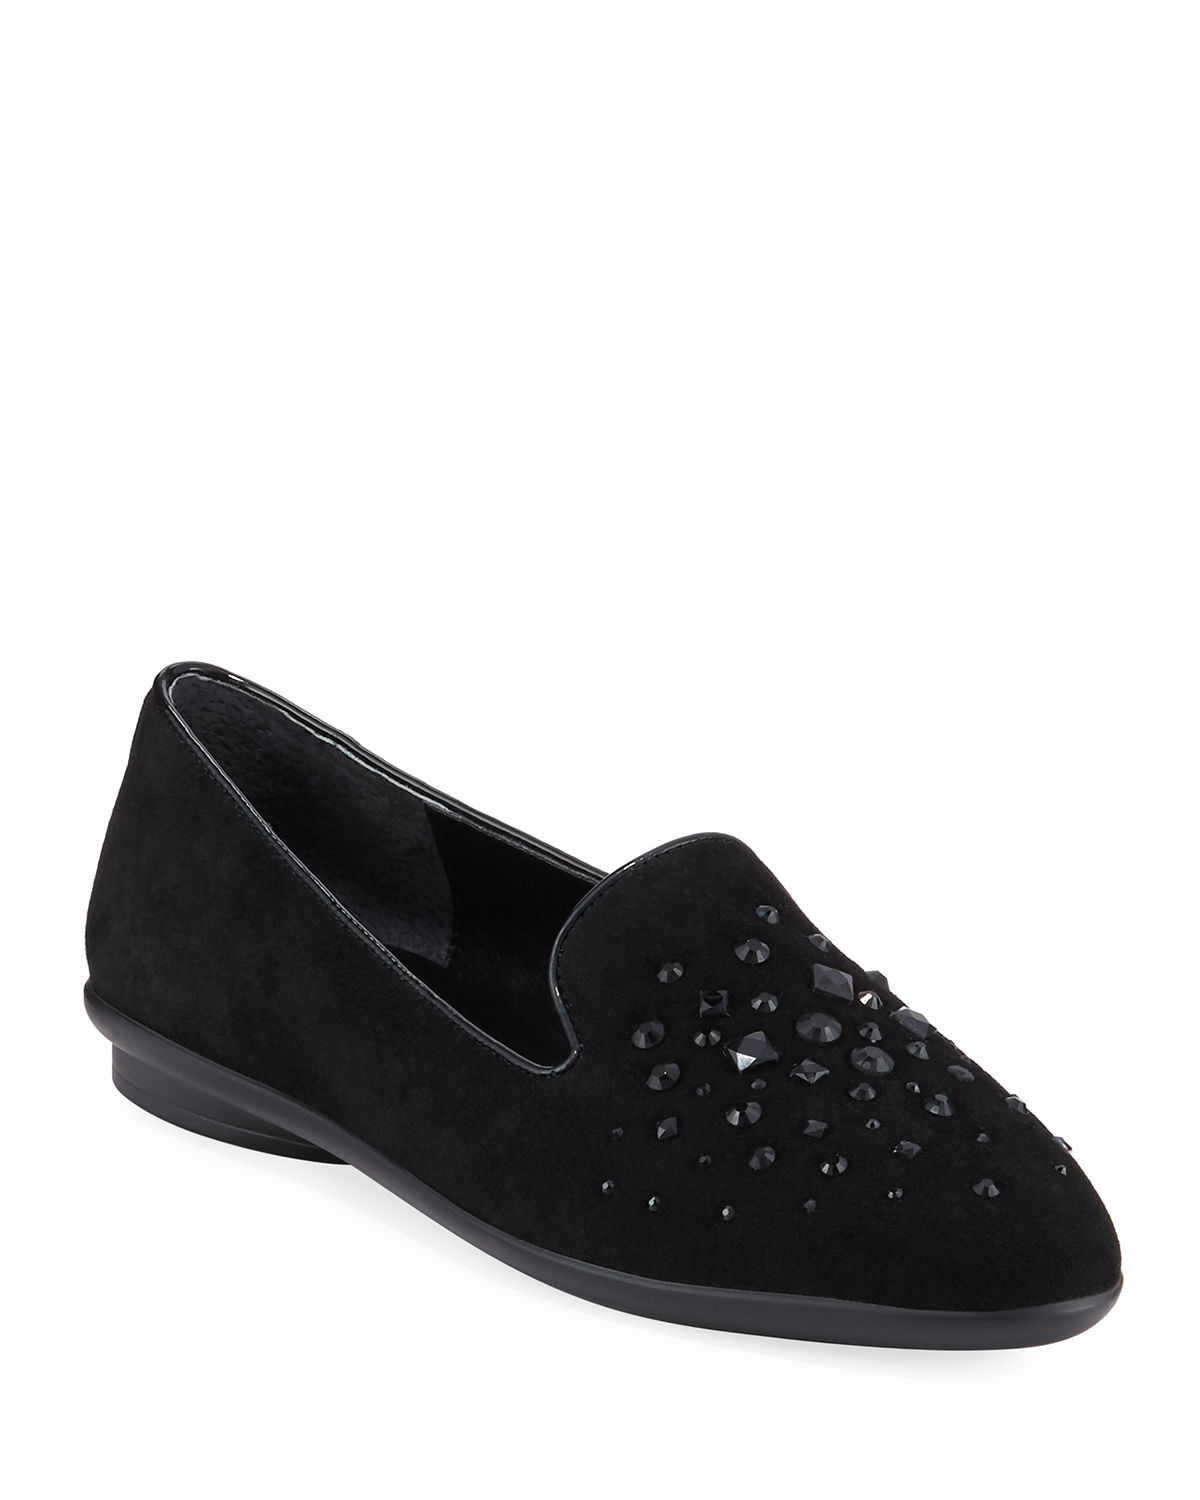 Markesp Beaded Suede Flats